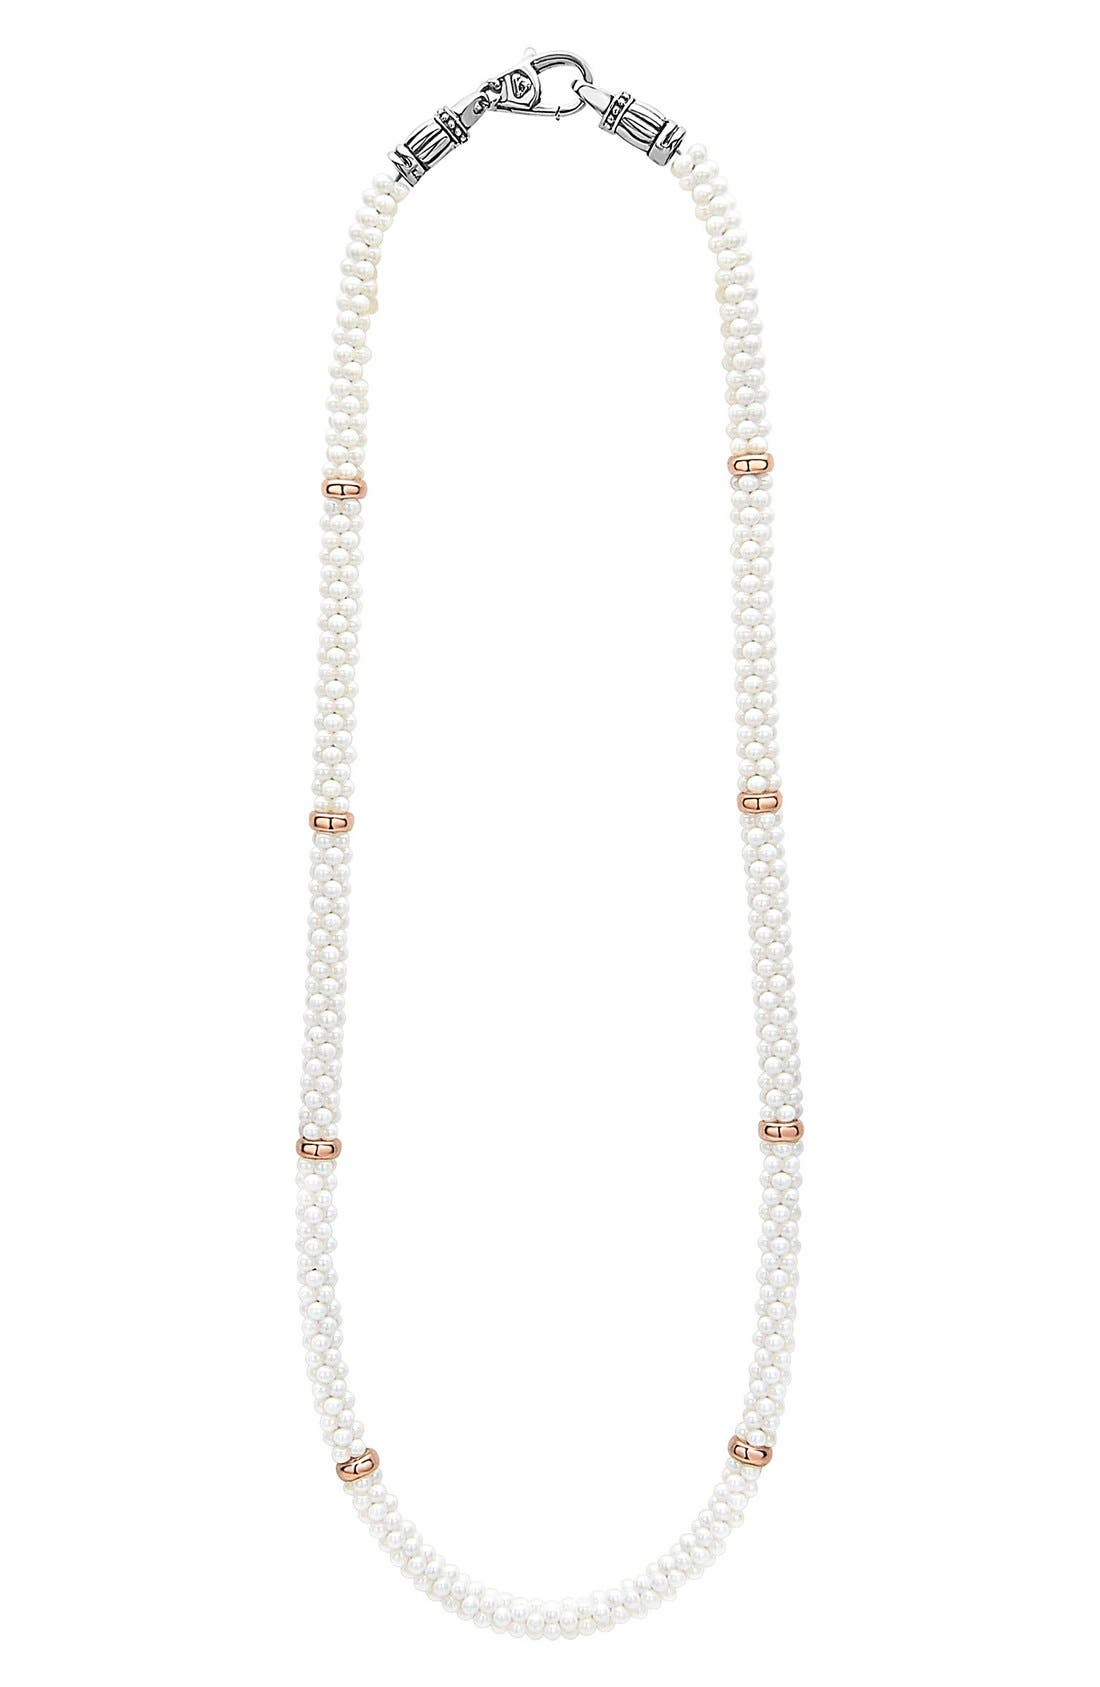 LAGOS 'White Caviar' 5mm Beaded Station Necklace